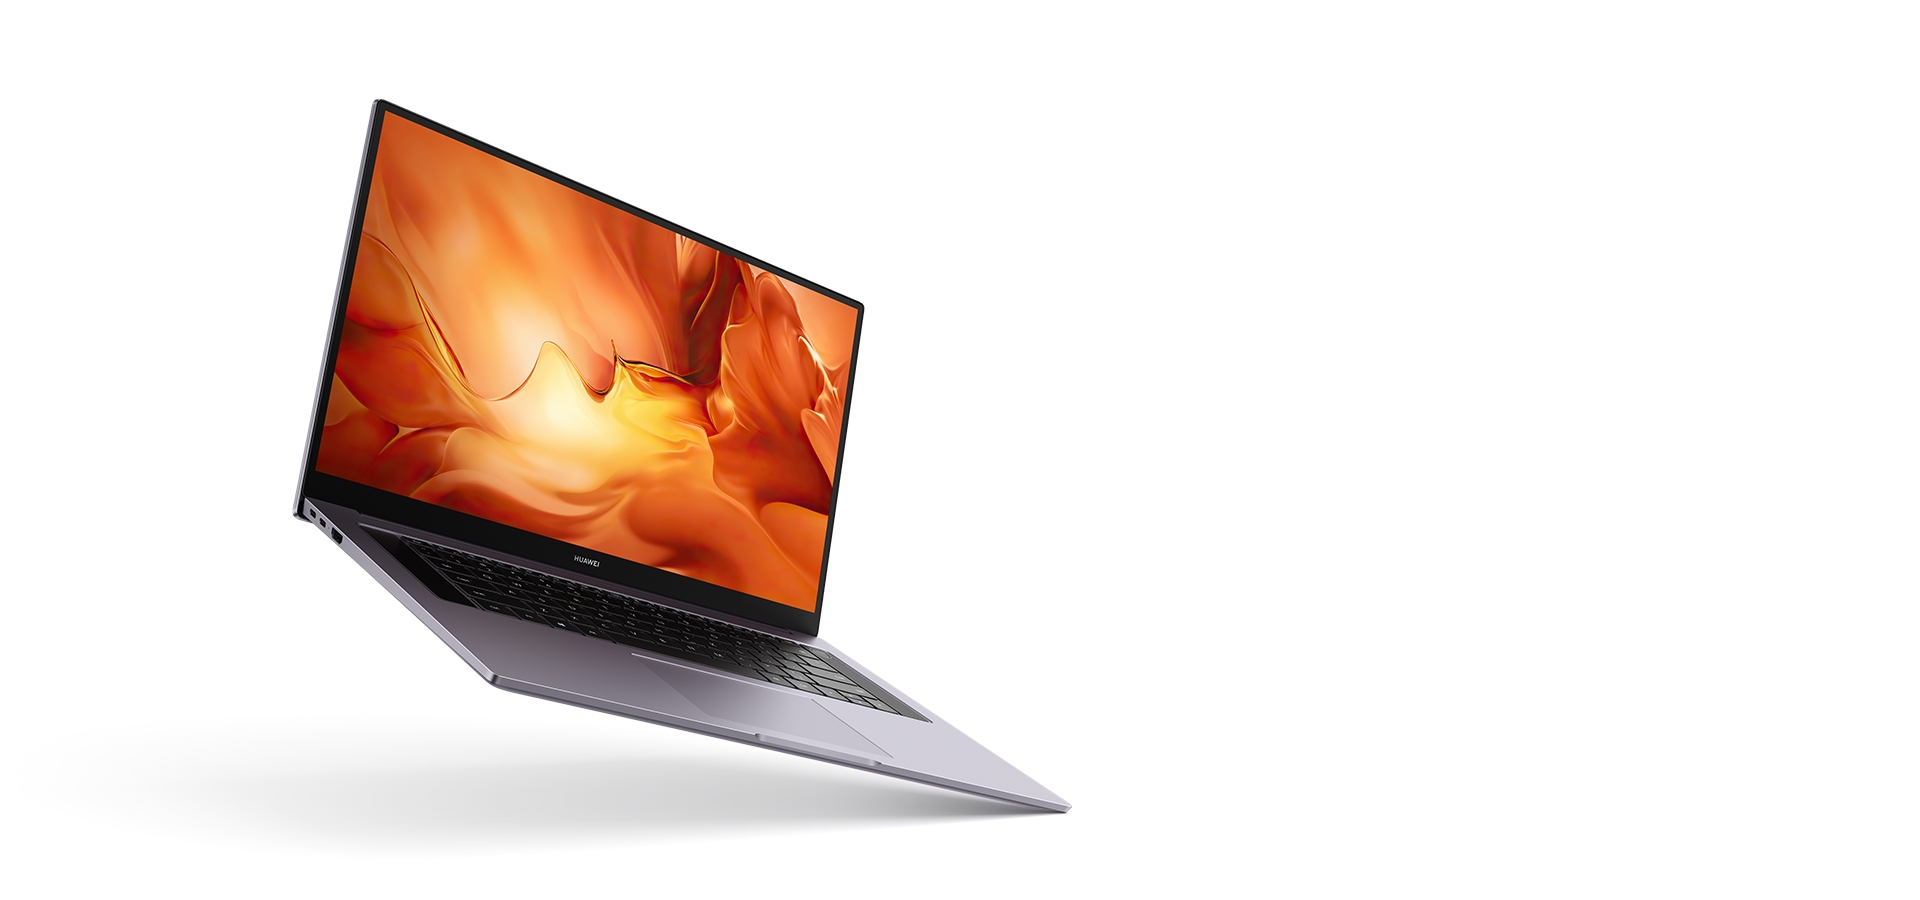 HUAWEI MateBook D 16 AMD 2021 light body